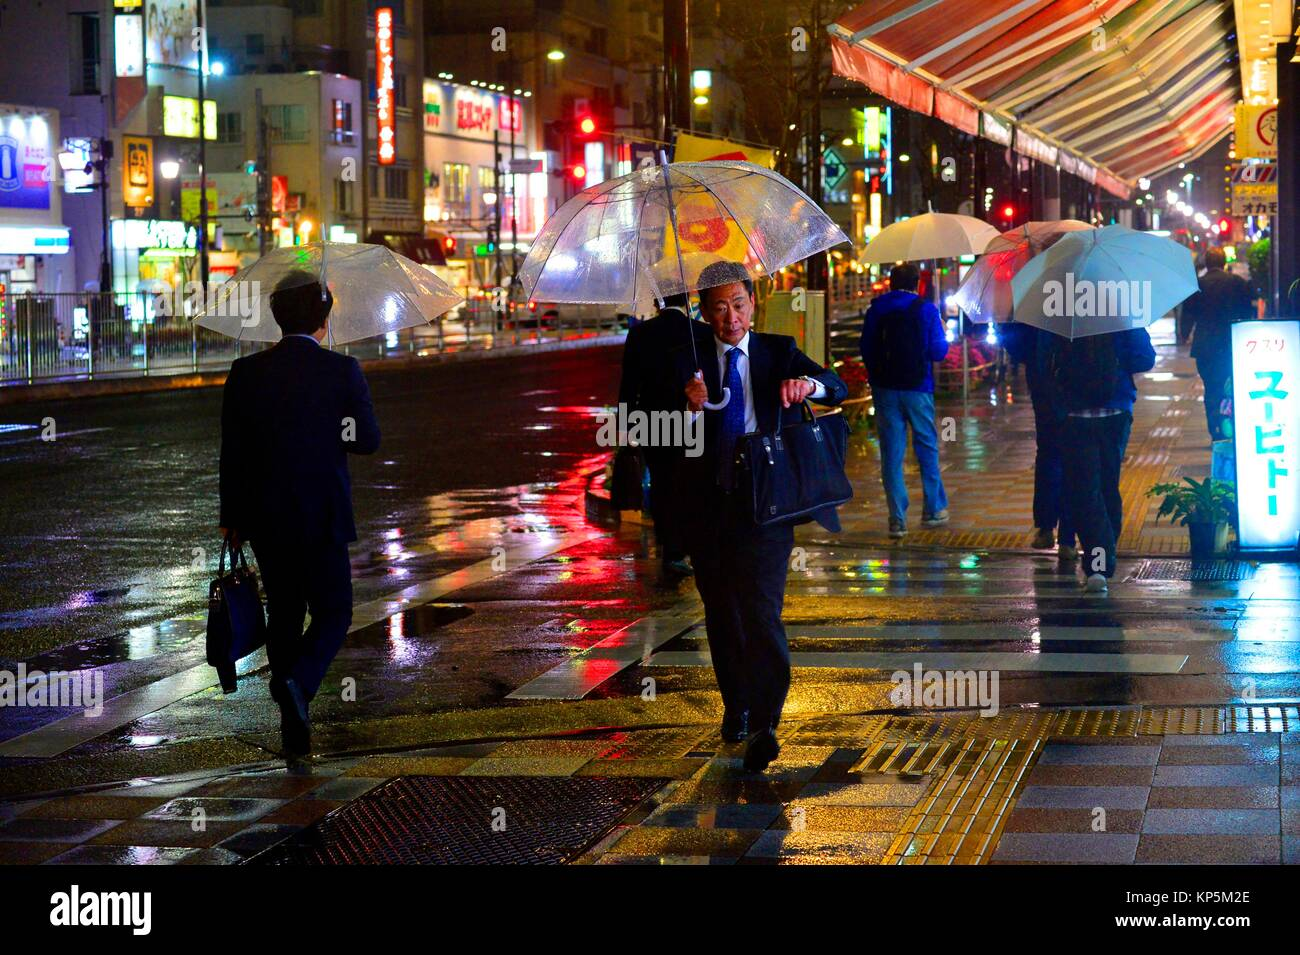 A strret of Asakusa by night a rainy day, Tokyo, Japan,Asia. - Stock Image